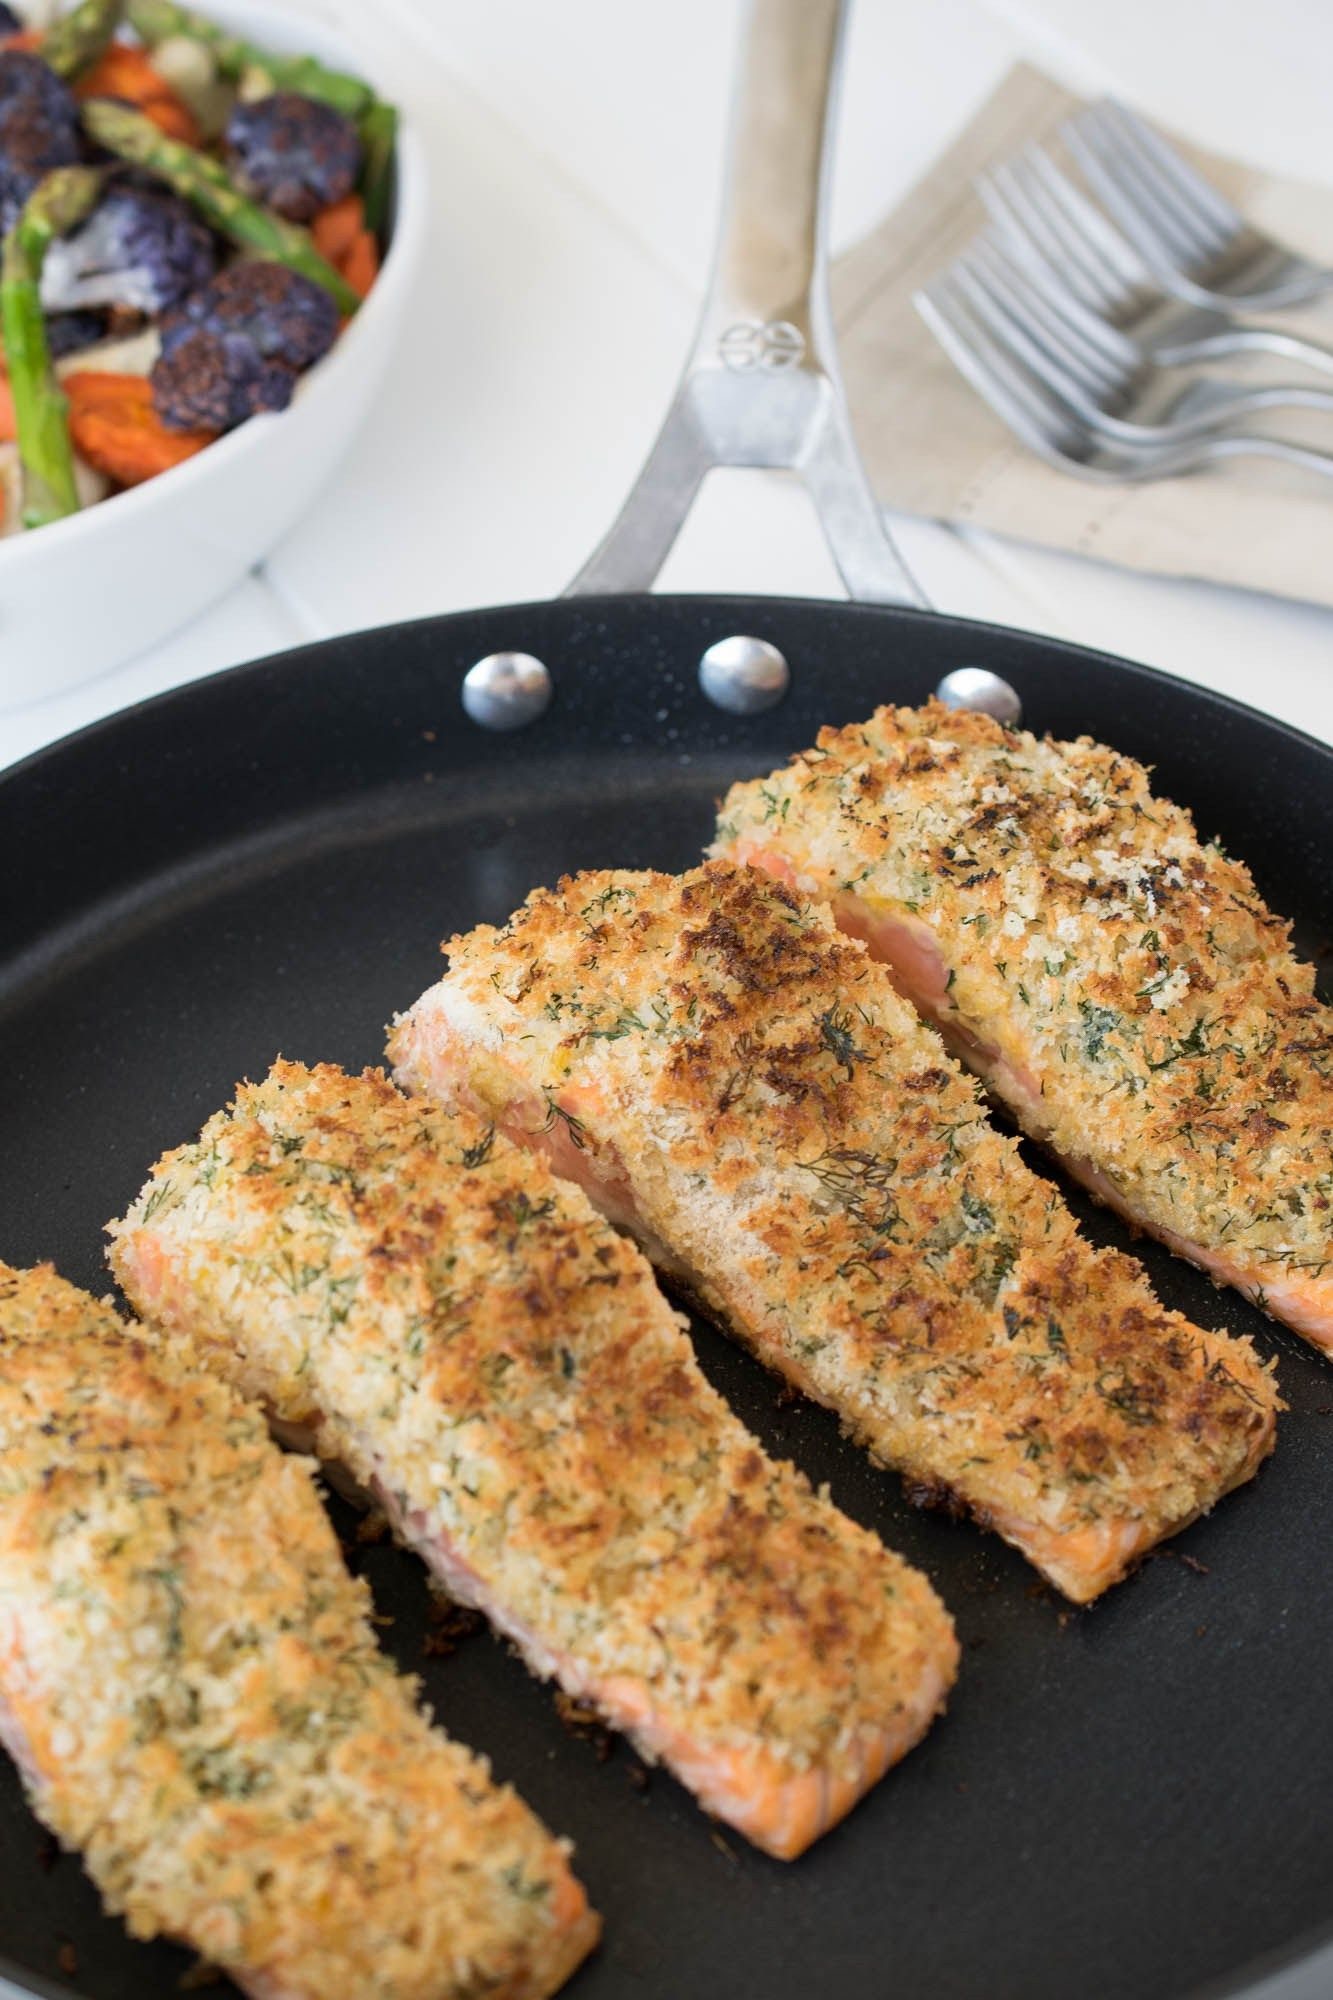 lemon parmesan crusted salmon  seared salmon topped with dijon mustard and a delicious lemon